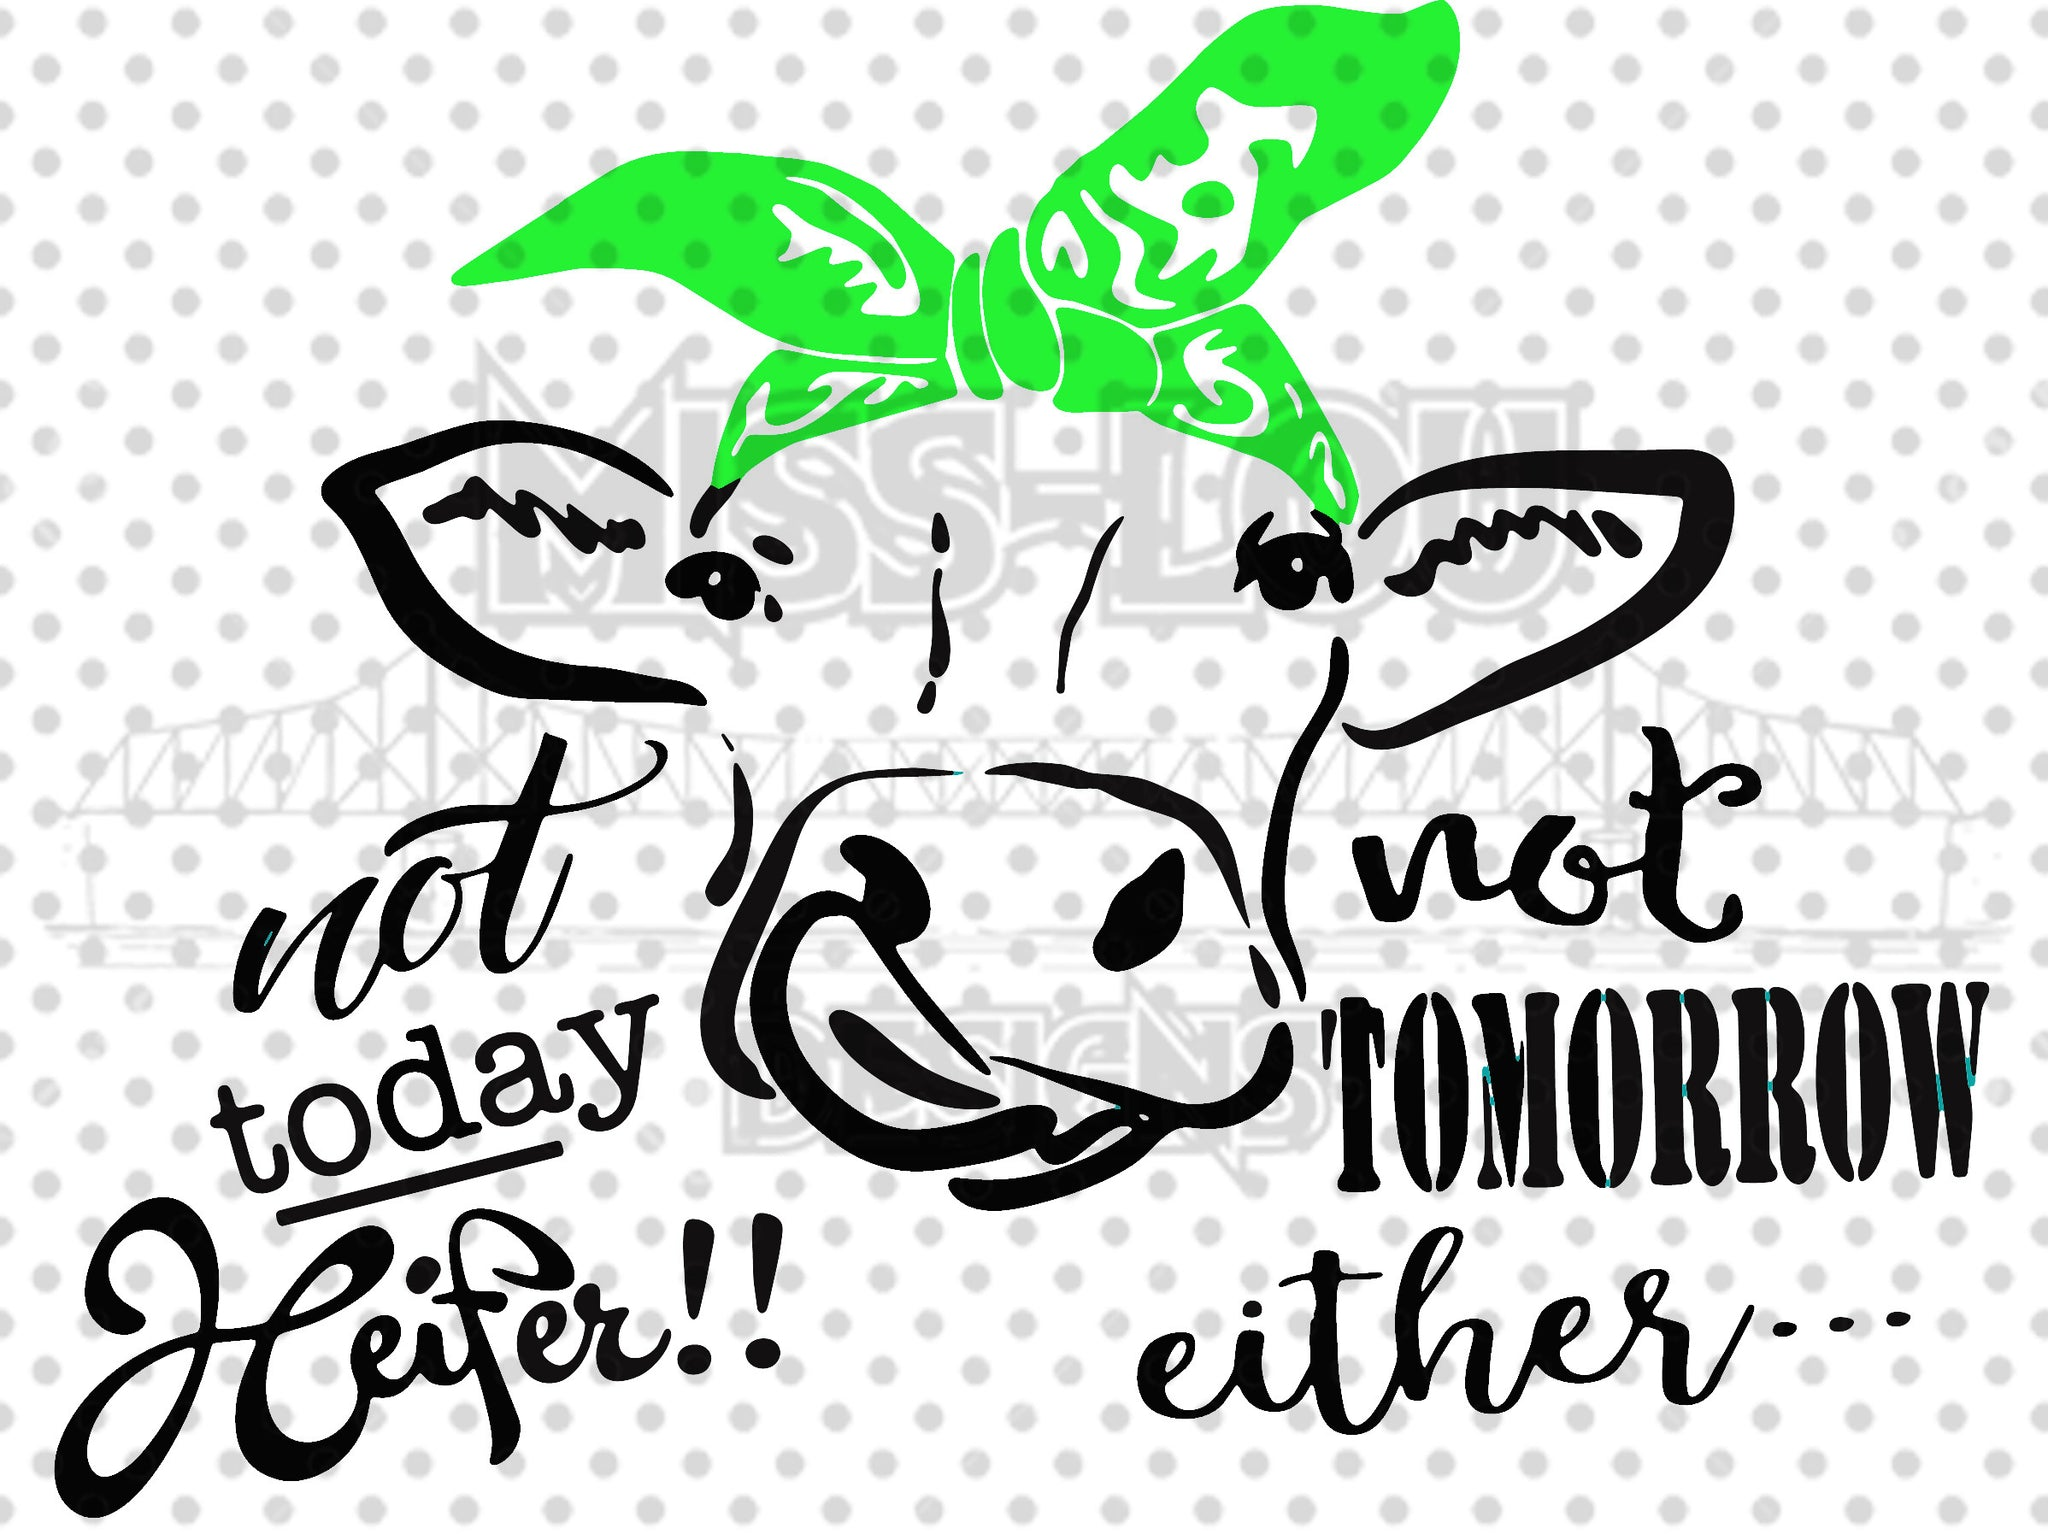 Not today Heifer Not tomorrow Either Digital Download